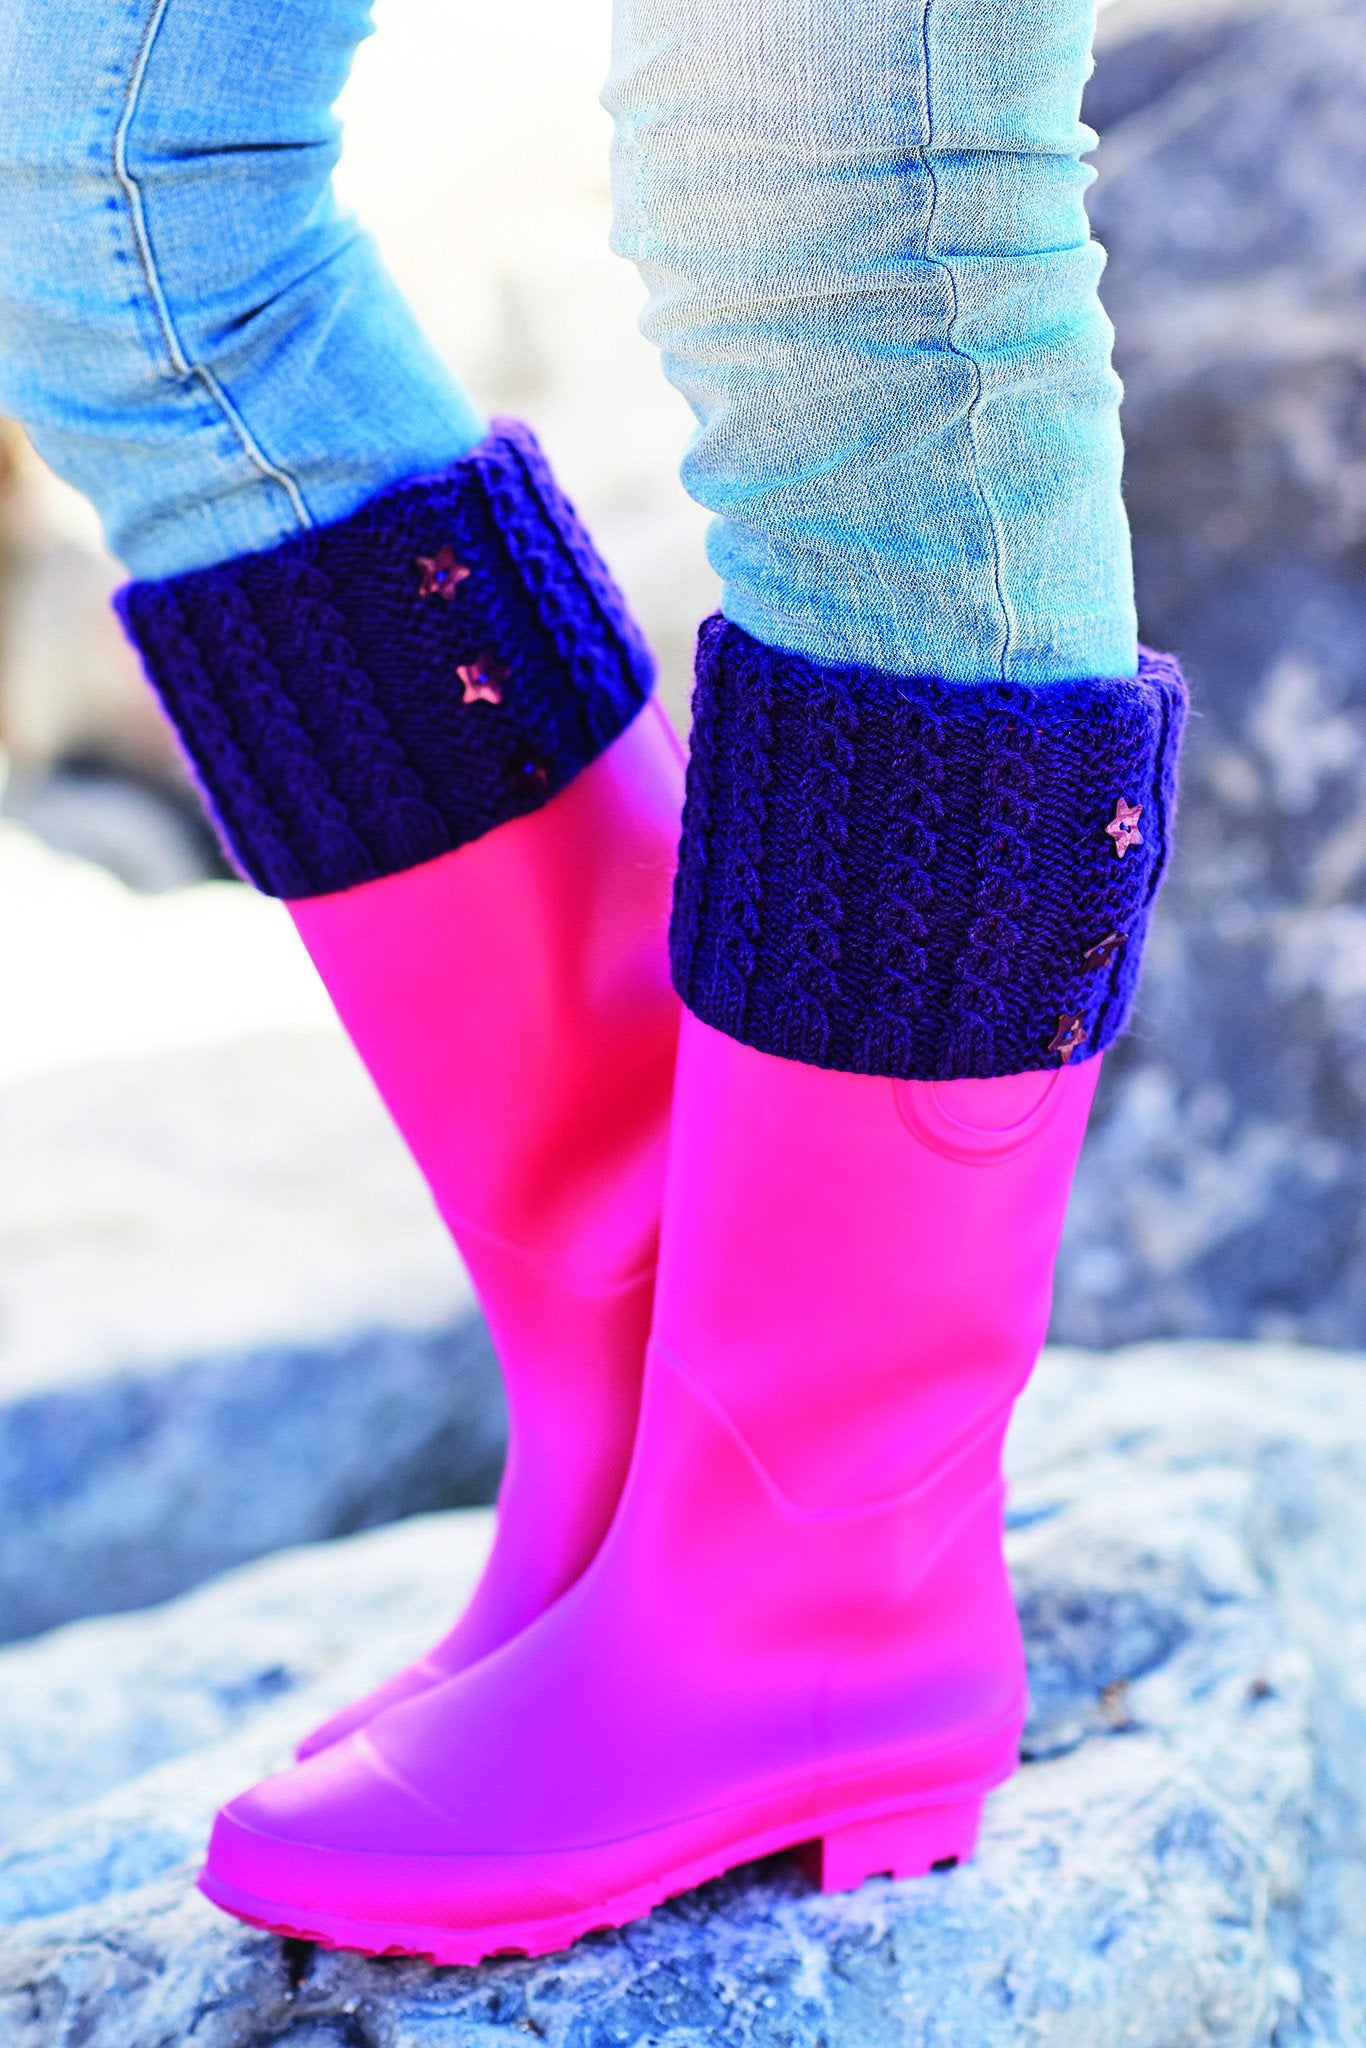 Wellington Boots Topper Knitting Pattern – The Knitting Network